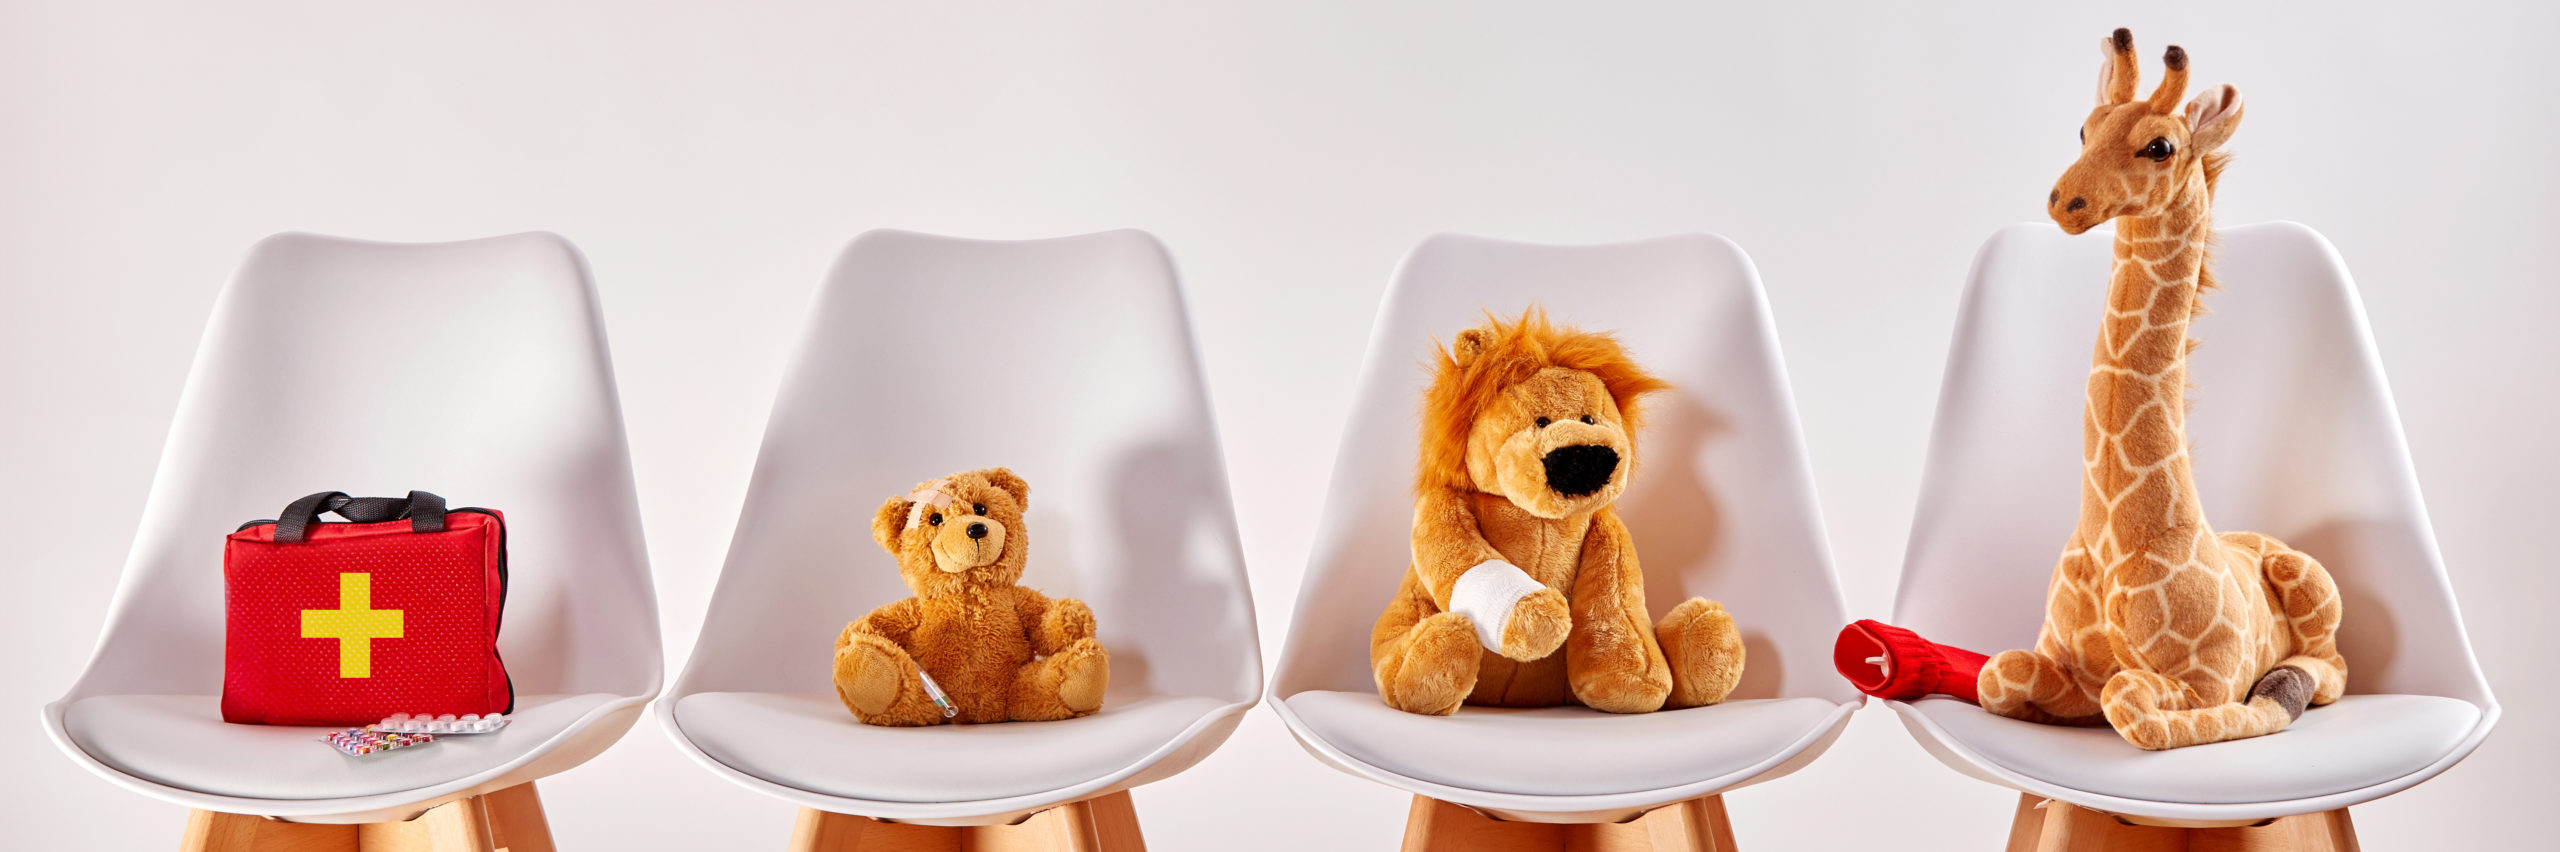 Three cute stuffed animal toys on chairs in the waiting room of a modern hospital or health center for children - Image